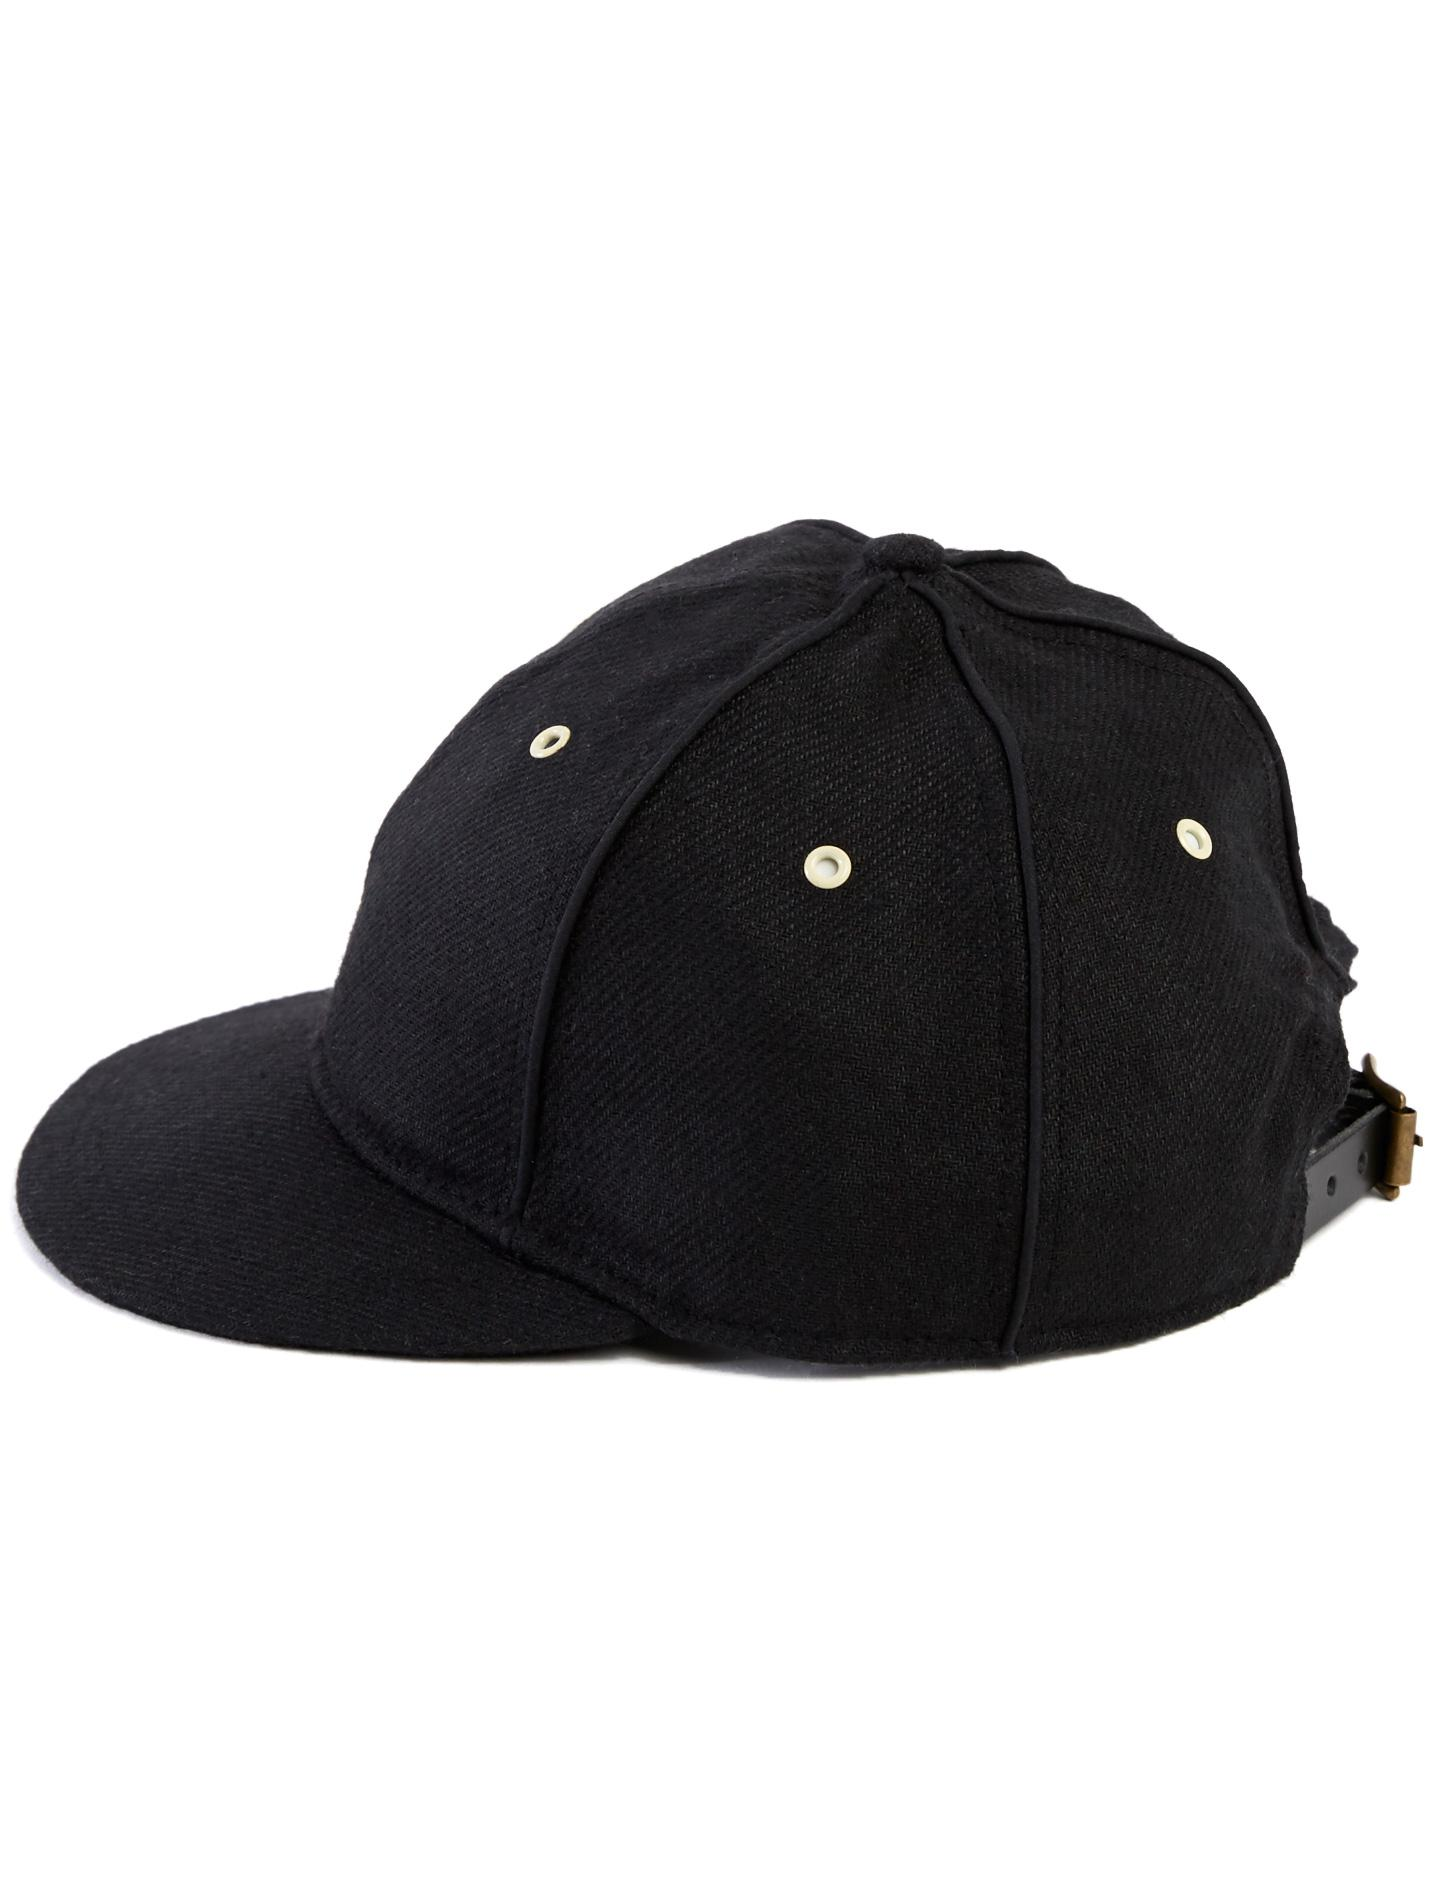 Lyst - Alternative Apparel The Wagner Old Time Shortbill Ball Cap in ... e9434bfcc1f